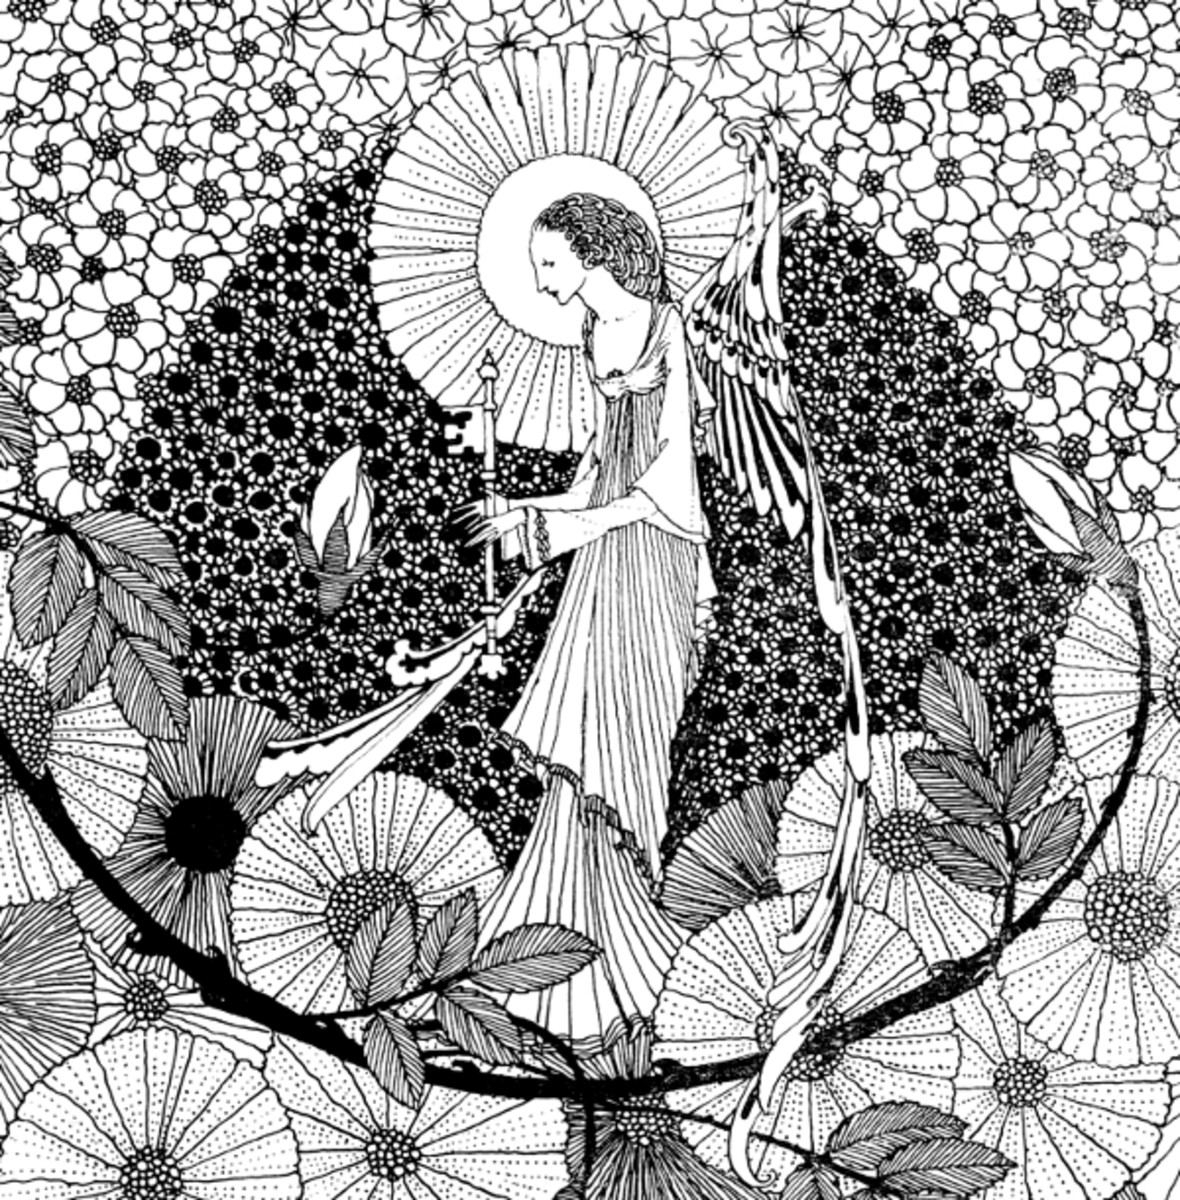 "Here we show a portion of 'With magic key ... unlocking buds that keep the roses' - it is one of the monotone designs from Harry Clarke published in ""The Year's at the Spring"" (1920)."